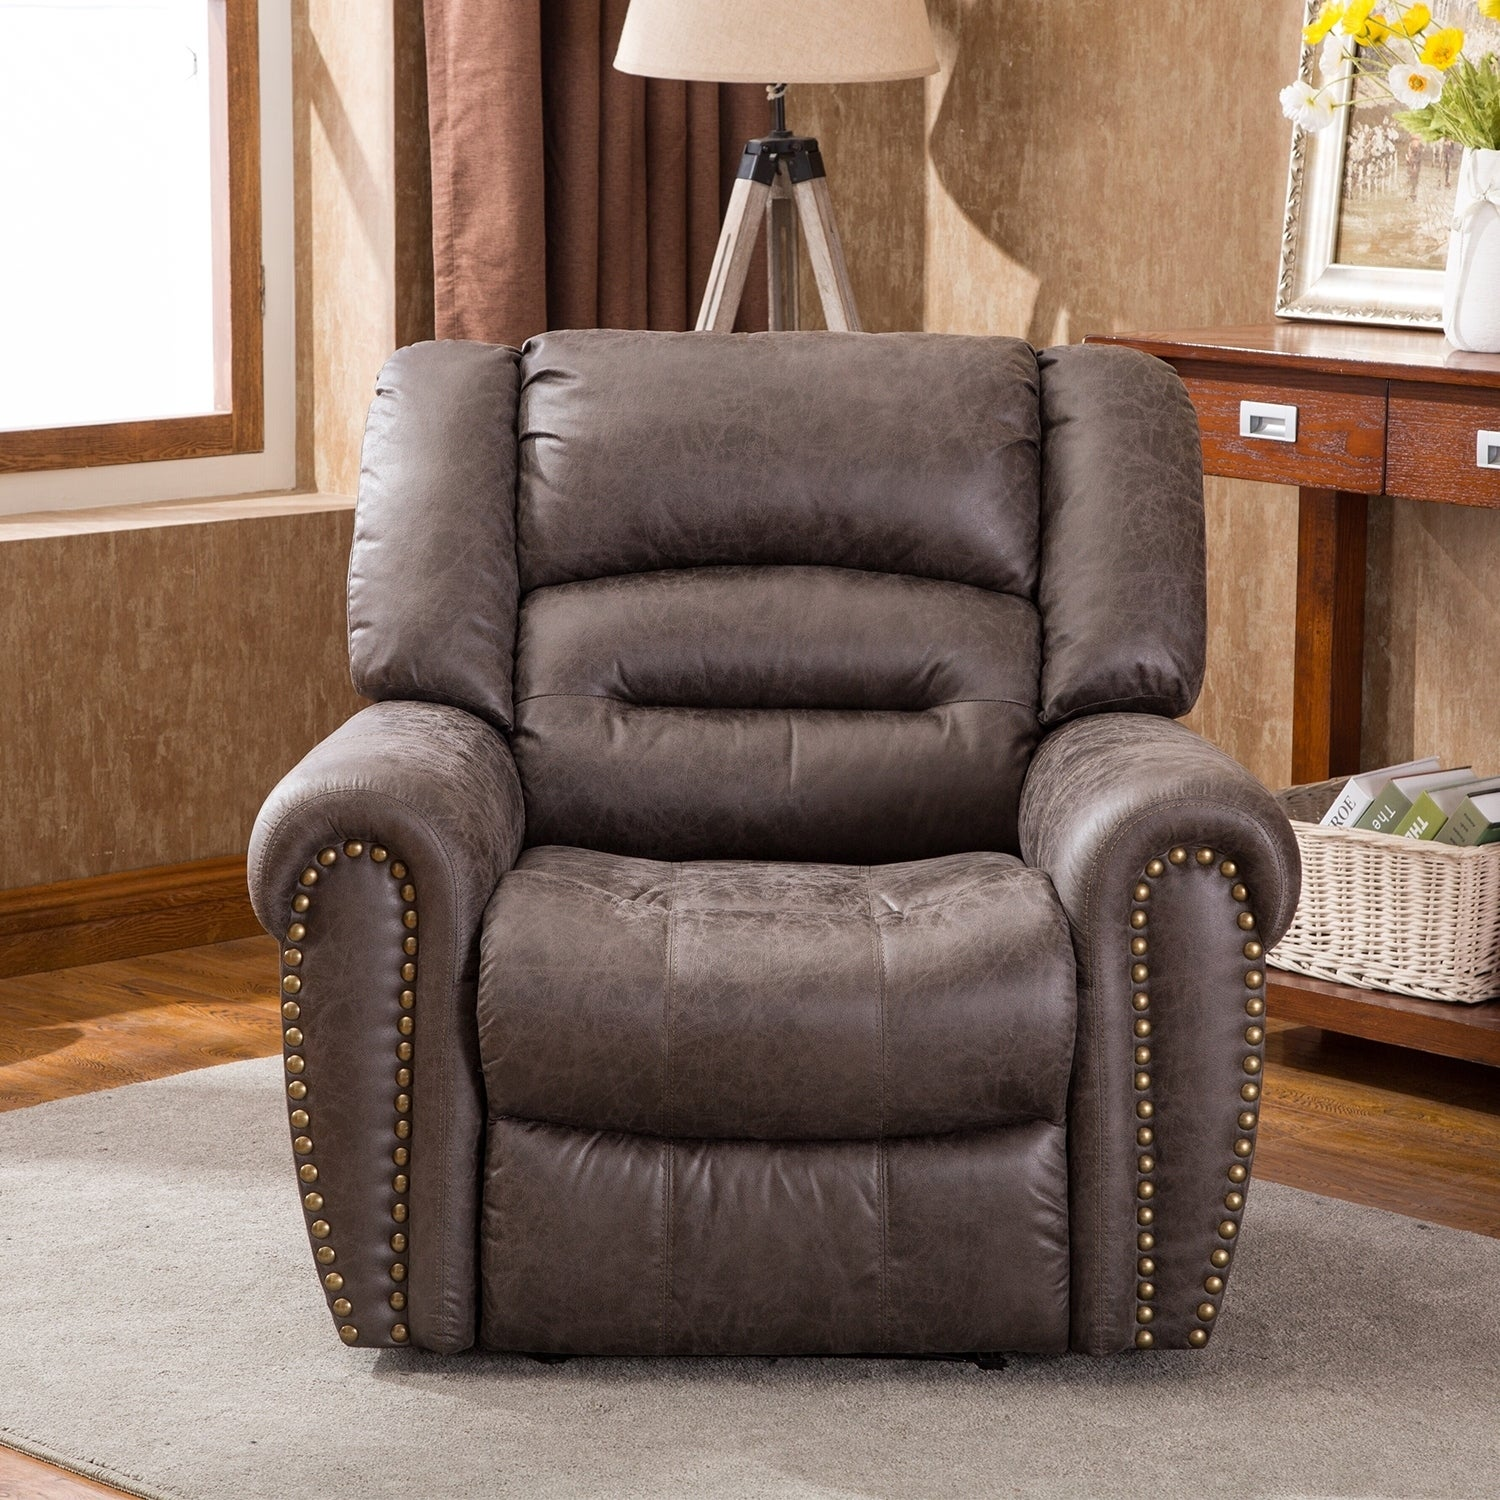 Power Recliner Chair Worned Leather Look Micro Fiber Oversized Electirc Recliner Chair